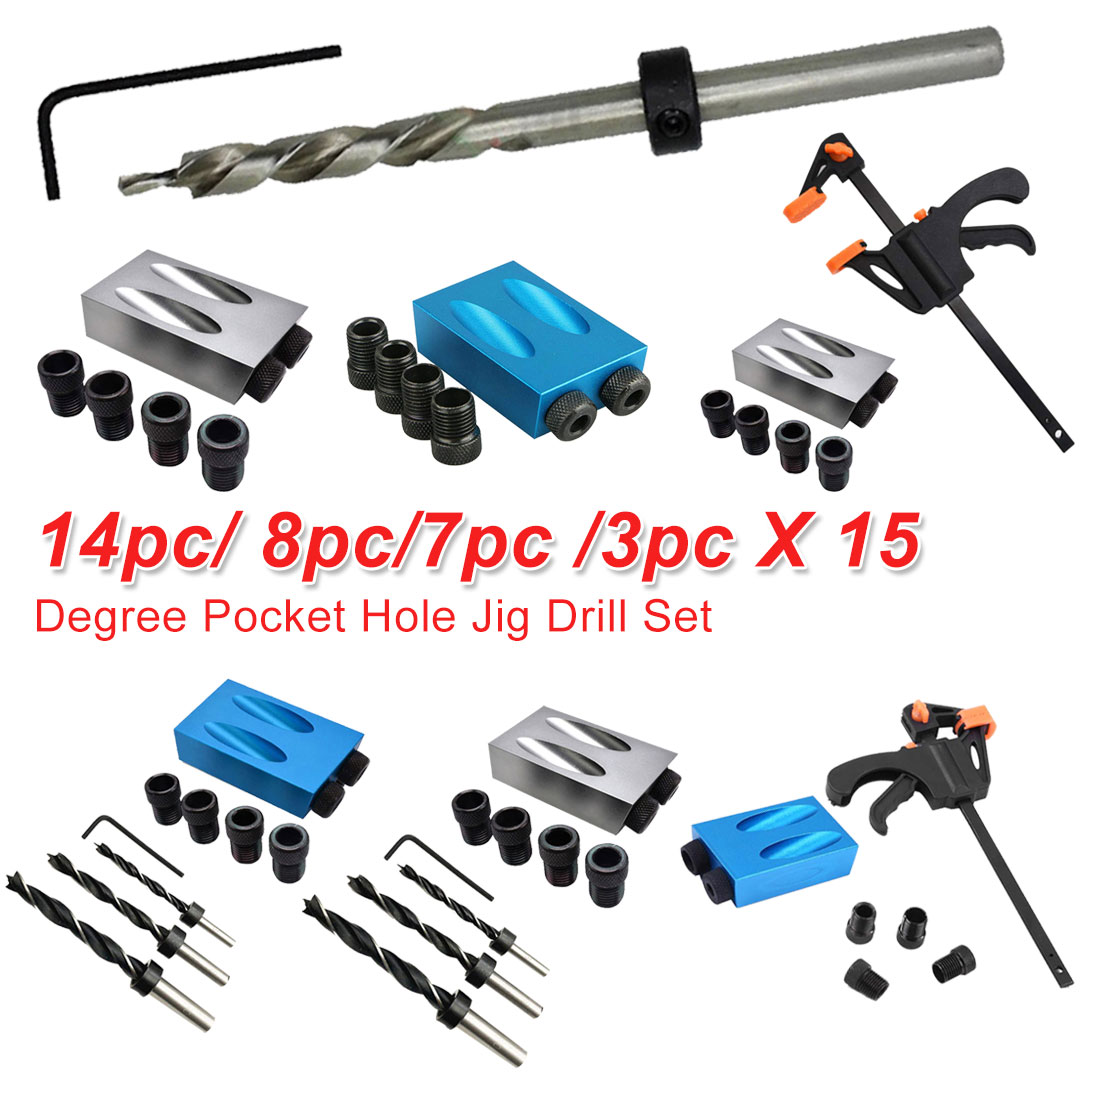 Hole Locator 14pc/ 8pc/7pc /3pc Angle Drilling Holes Guide Dowel Jig Wood Tool 6mm 8mm 10mm Drive Adapter For Woodworking